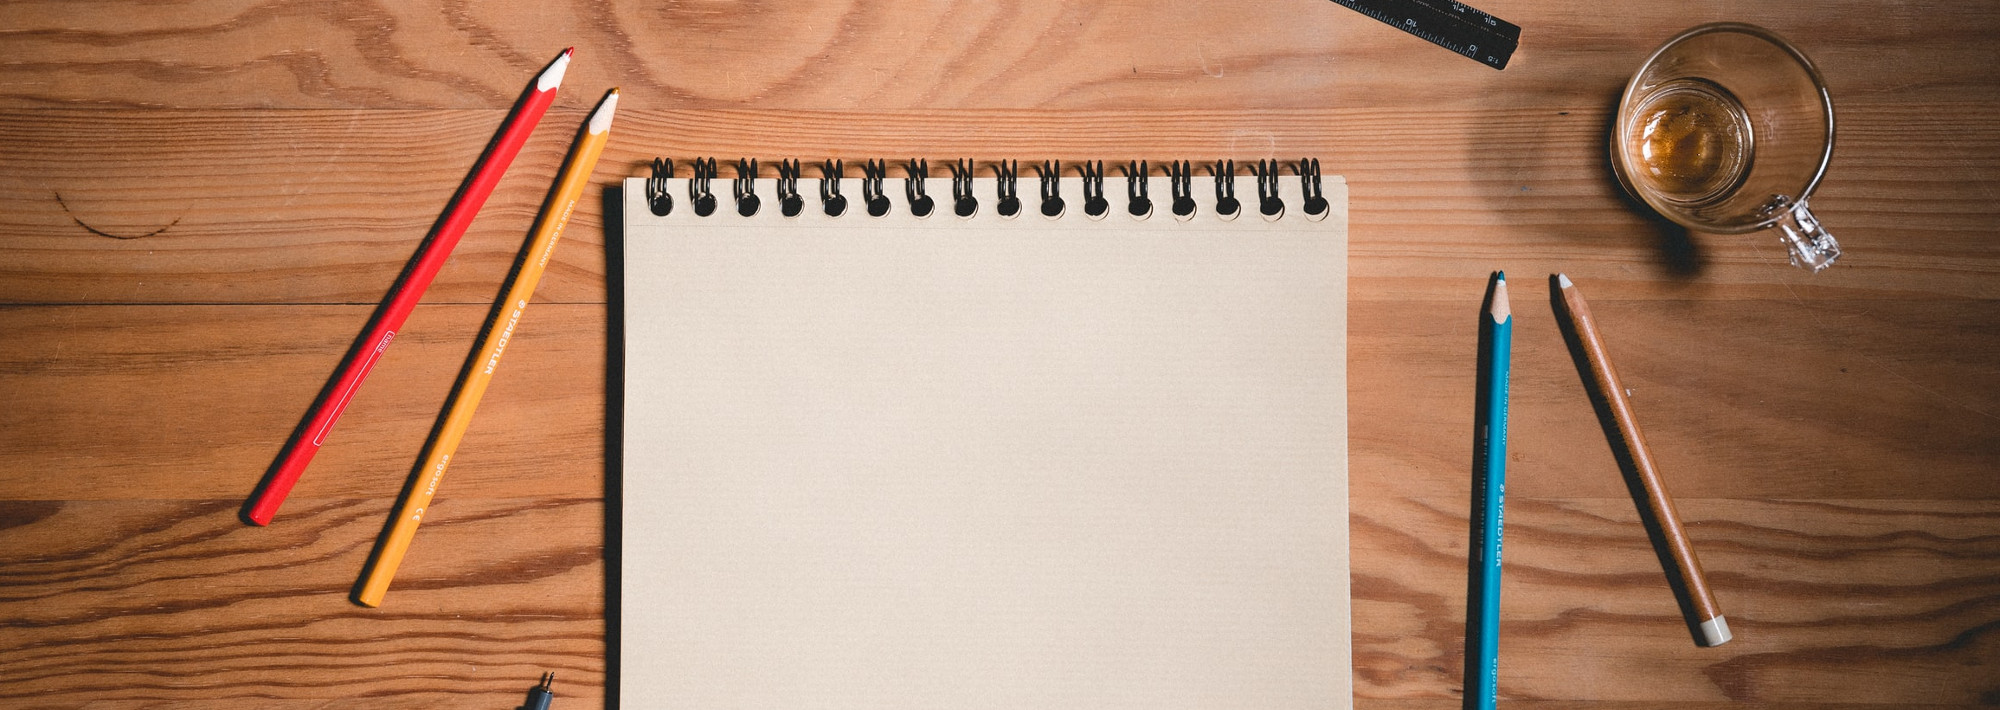 A notebook on a wooden table, with pencils around the notebook. The page is blank.